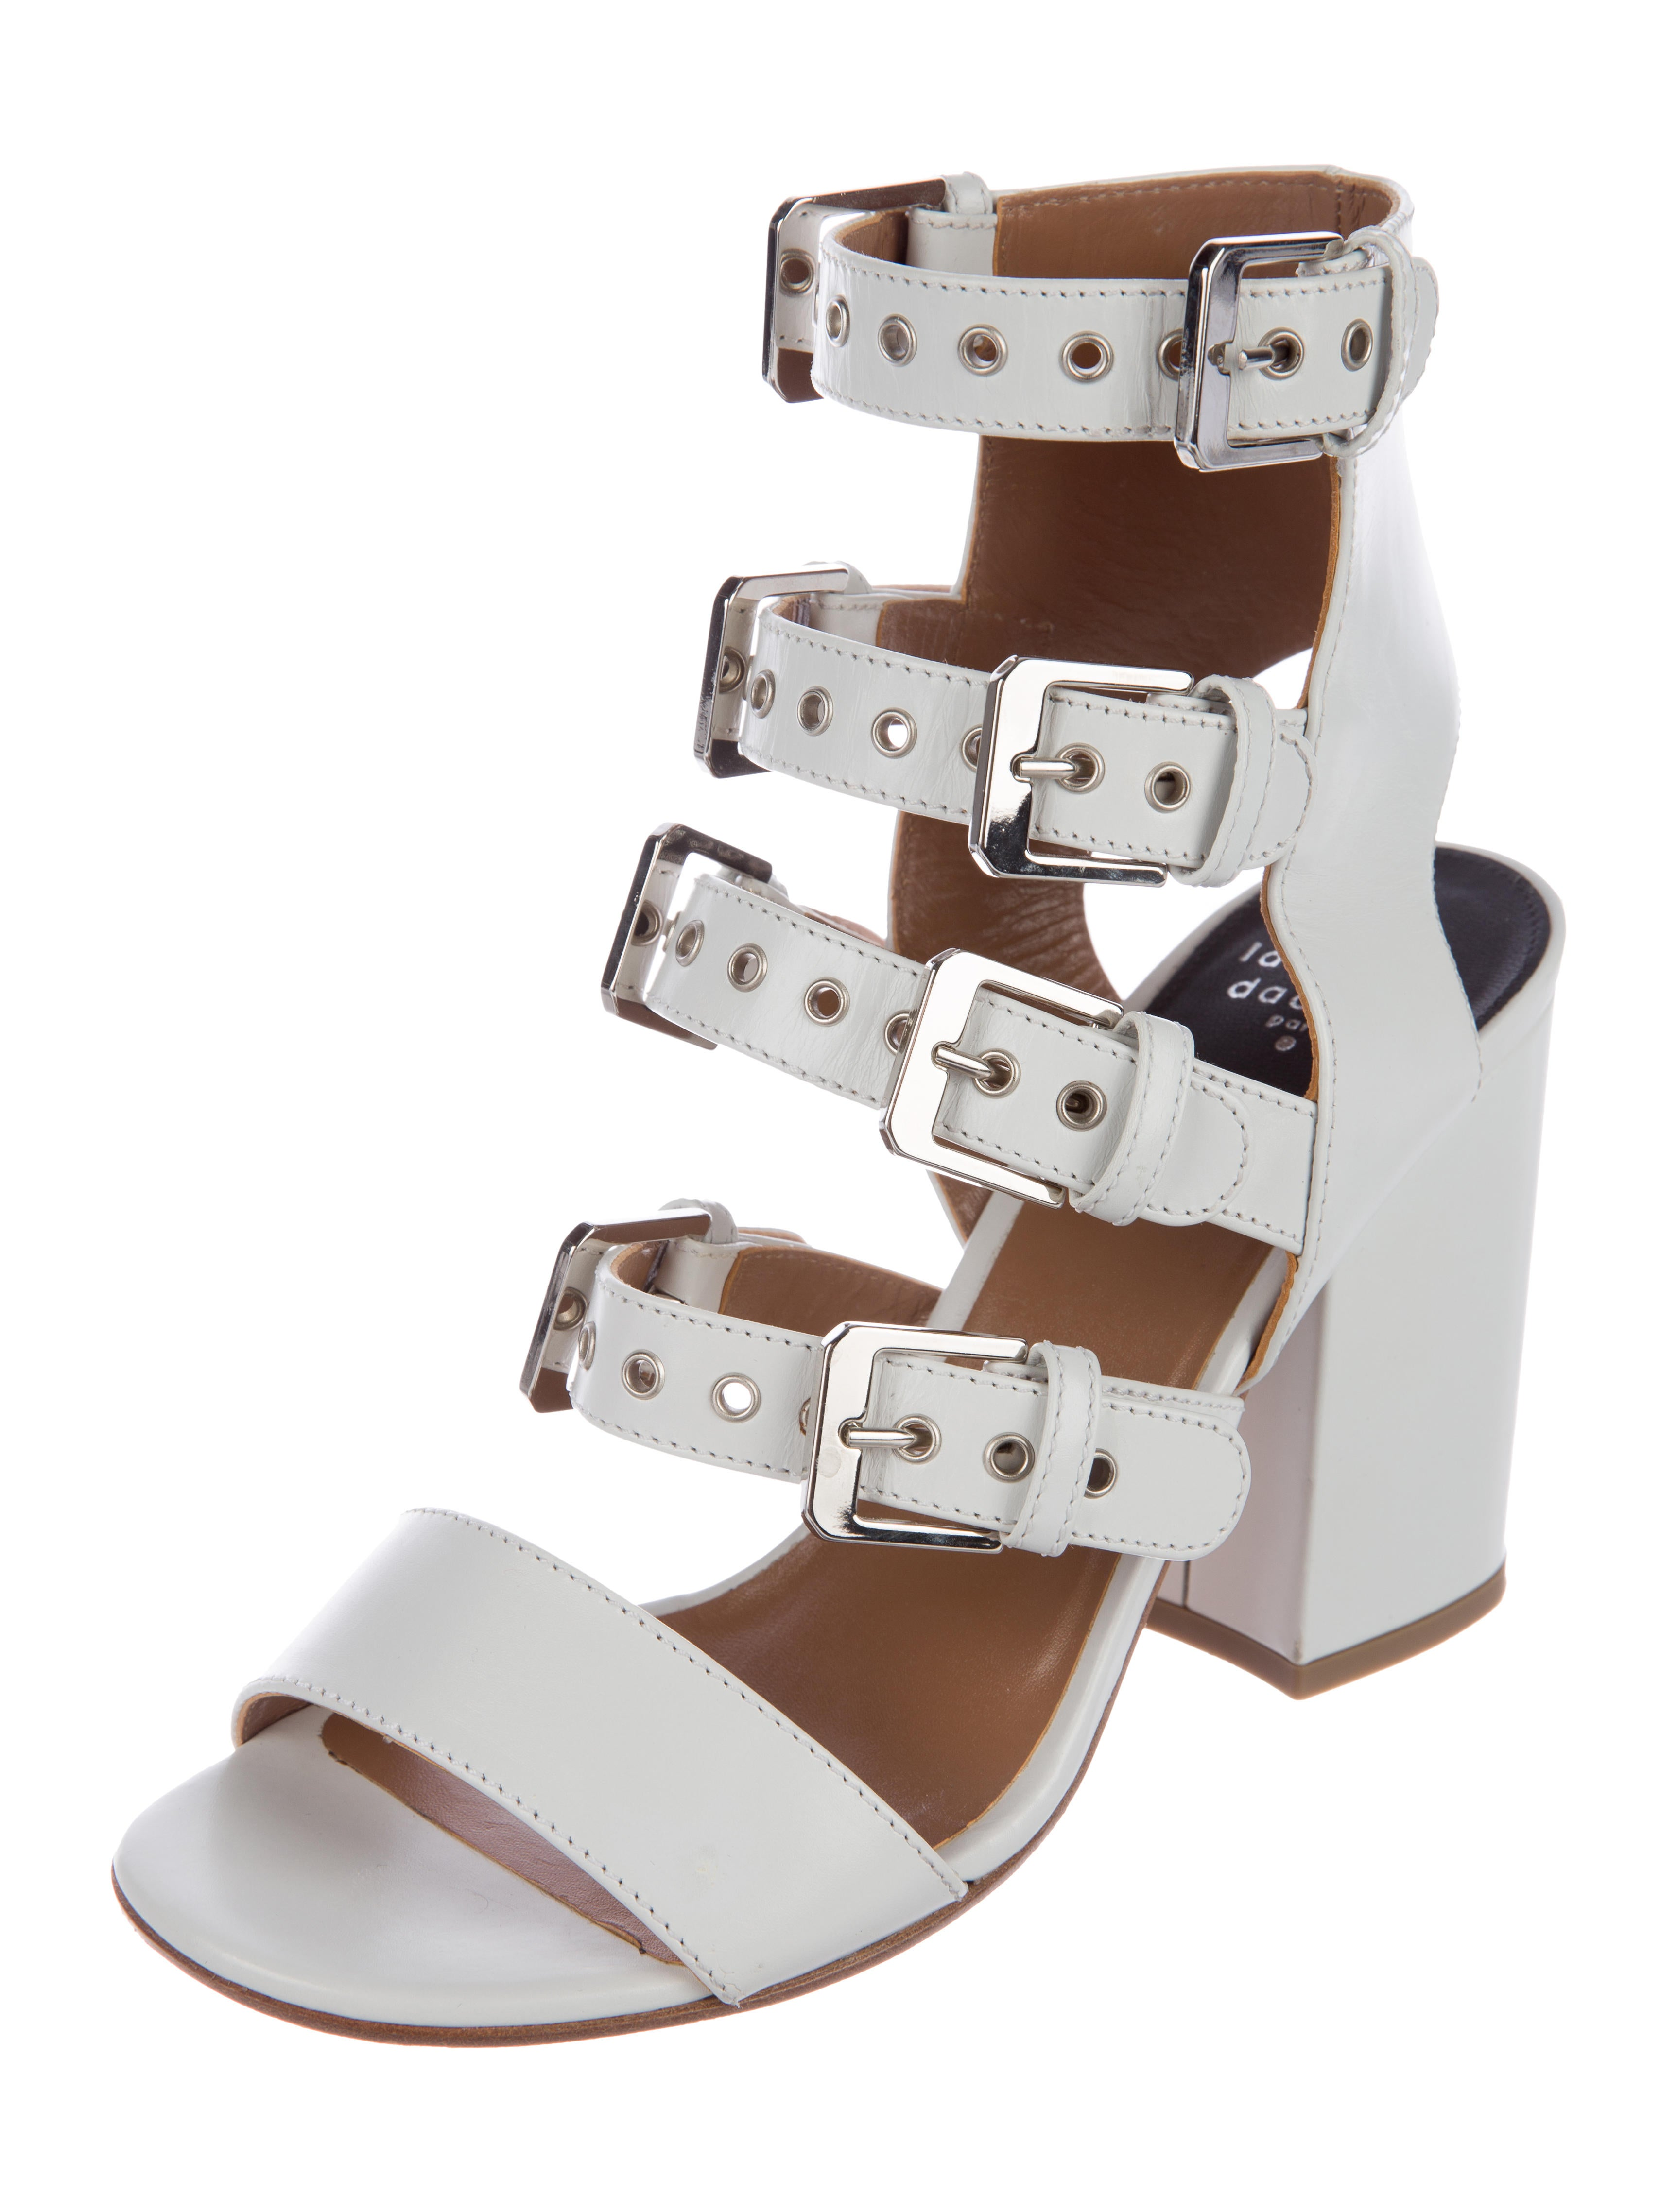 Laurence Dacade Leather Multistrap Sandals buy cheap websites extremely cheap price b56o2